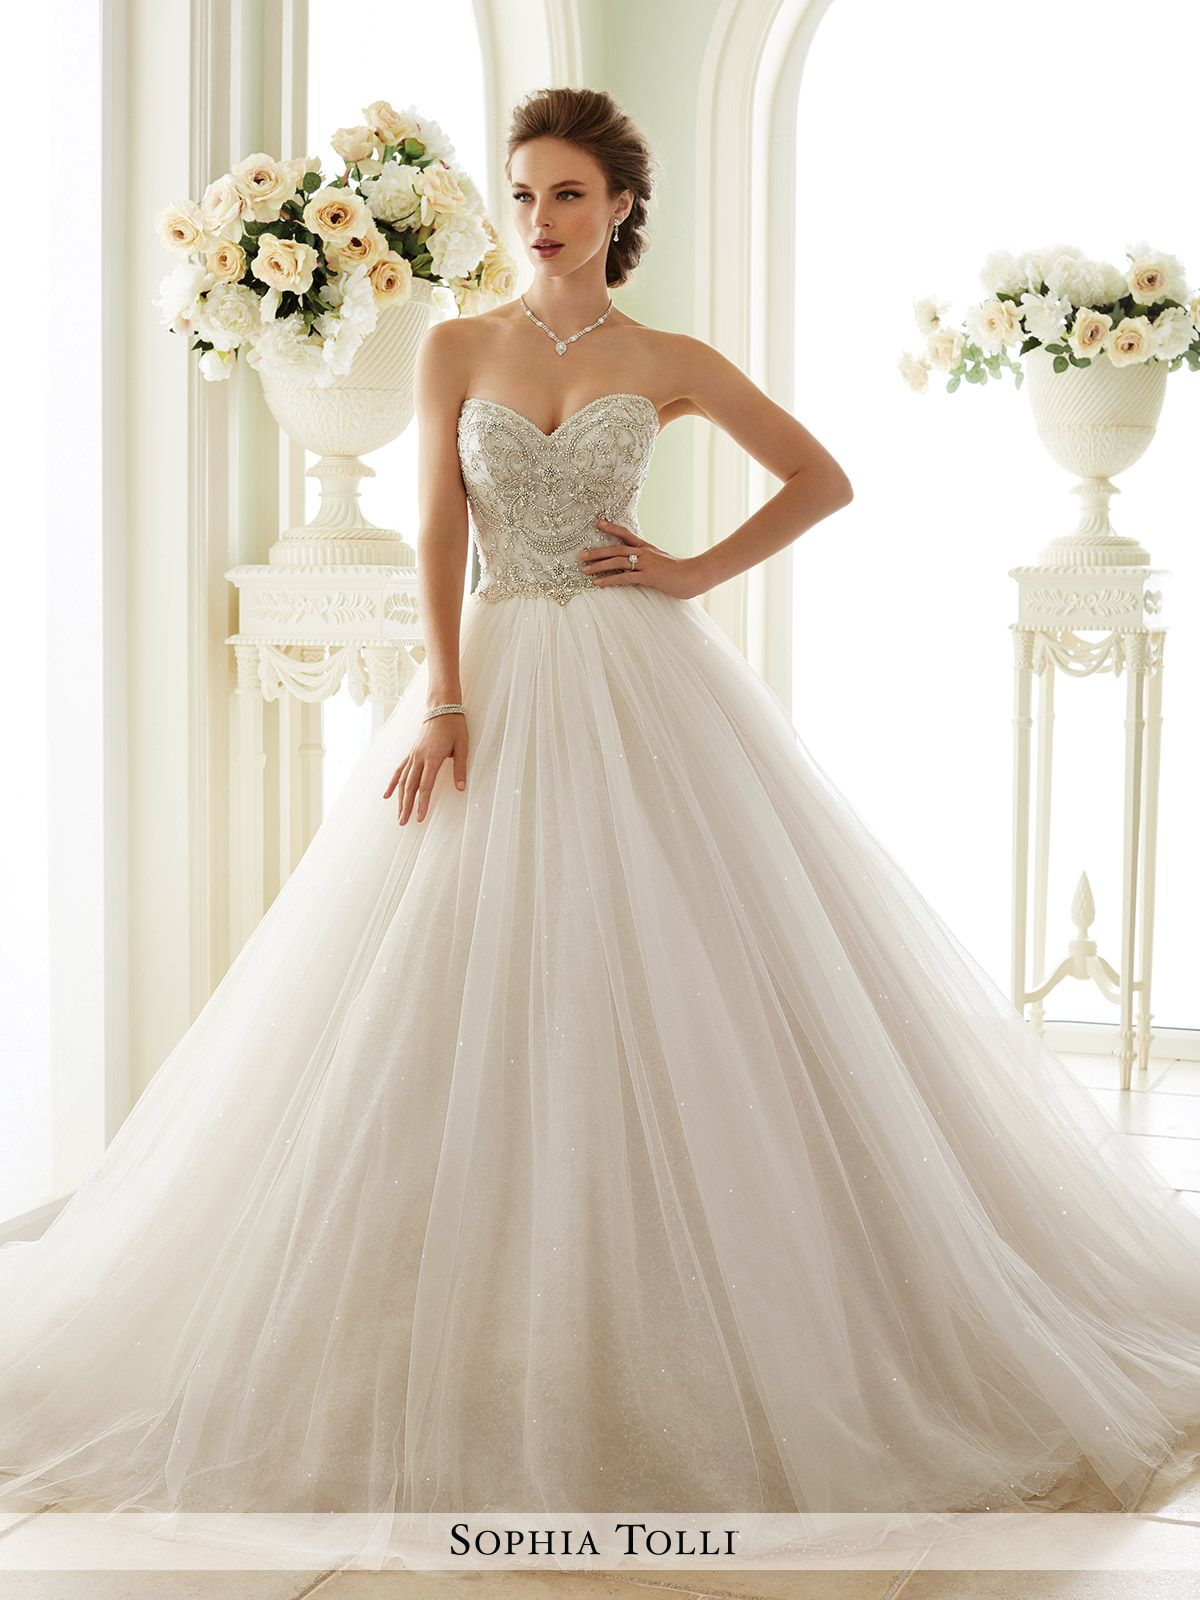 5fa6e72cece6 Tulle ball gown with sweetheart neckline, rich crystal hand-beaded  embroidery adorns bodice, back corset, sparkling gathered full skirt with  chapel train.